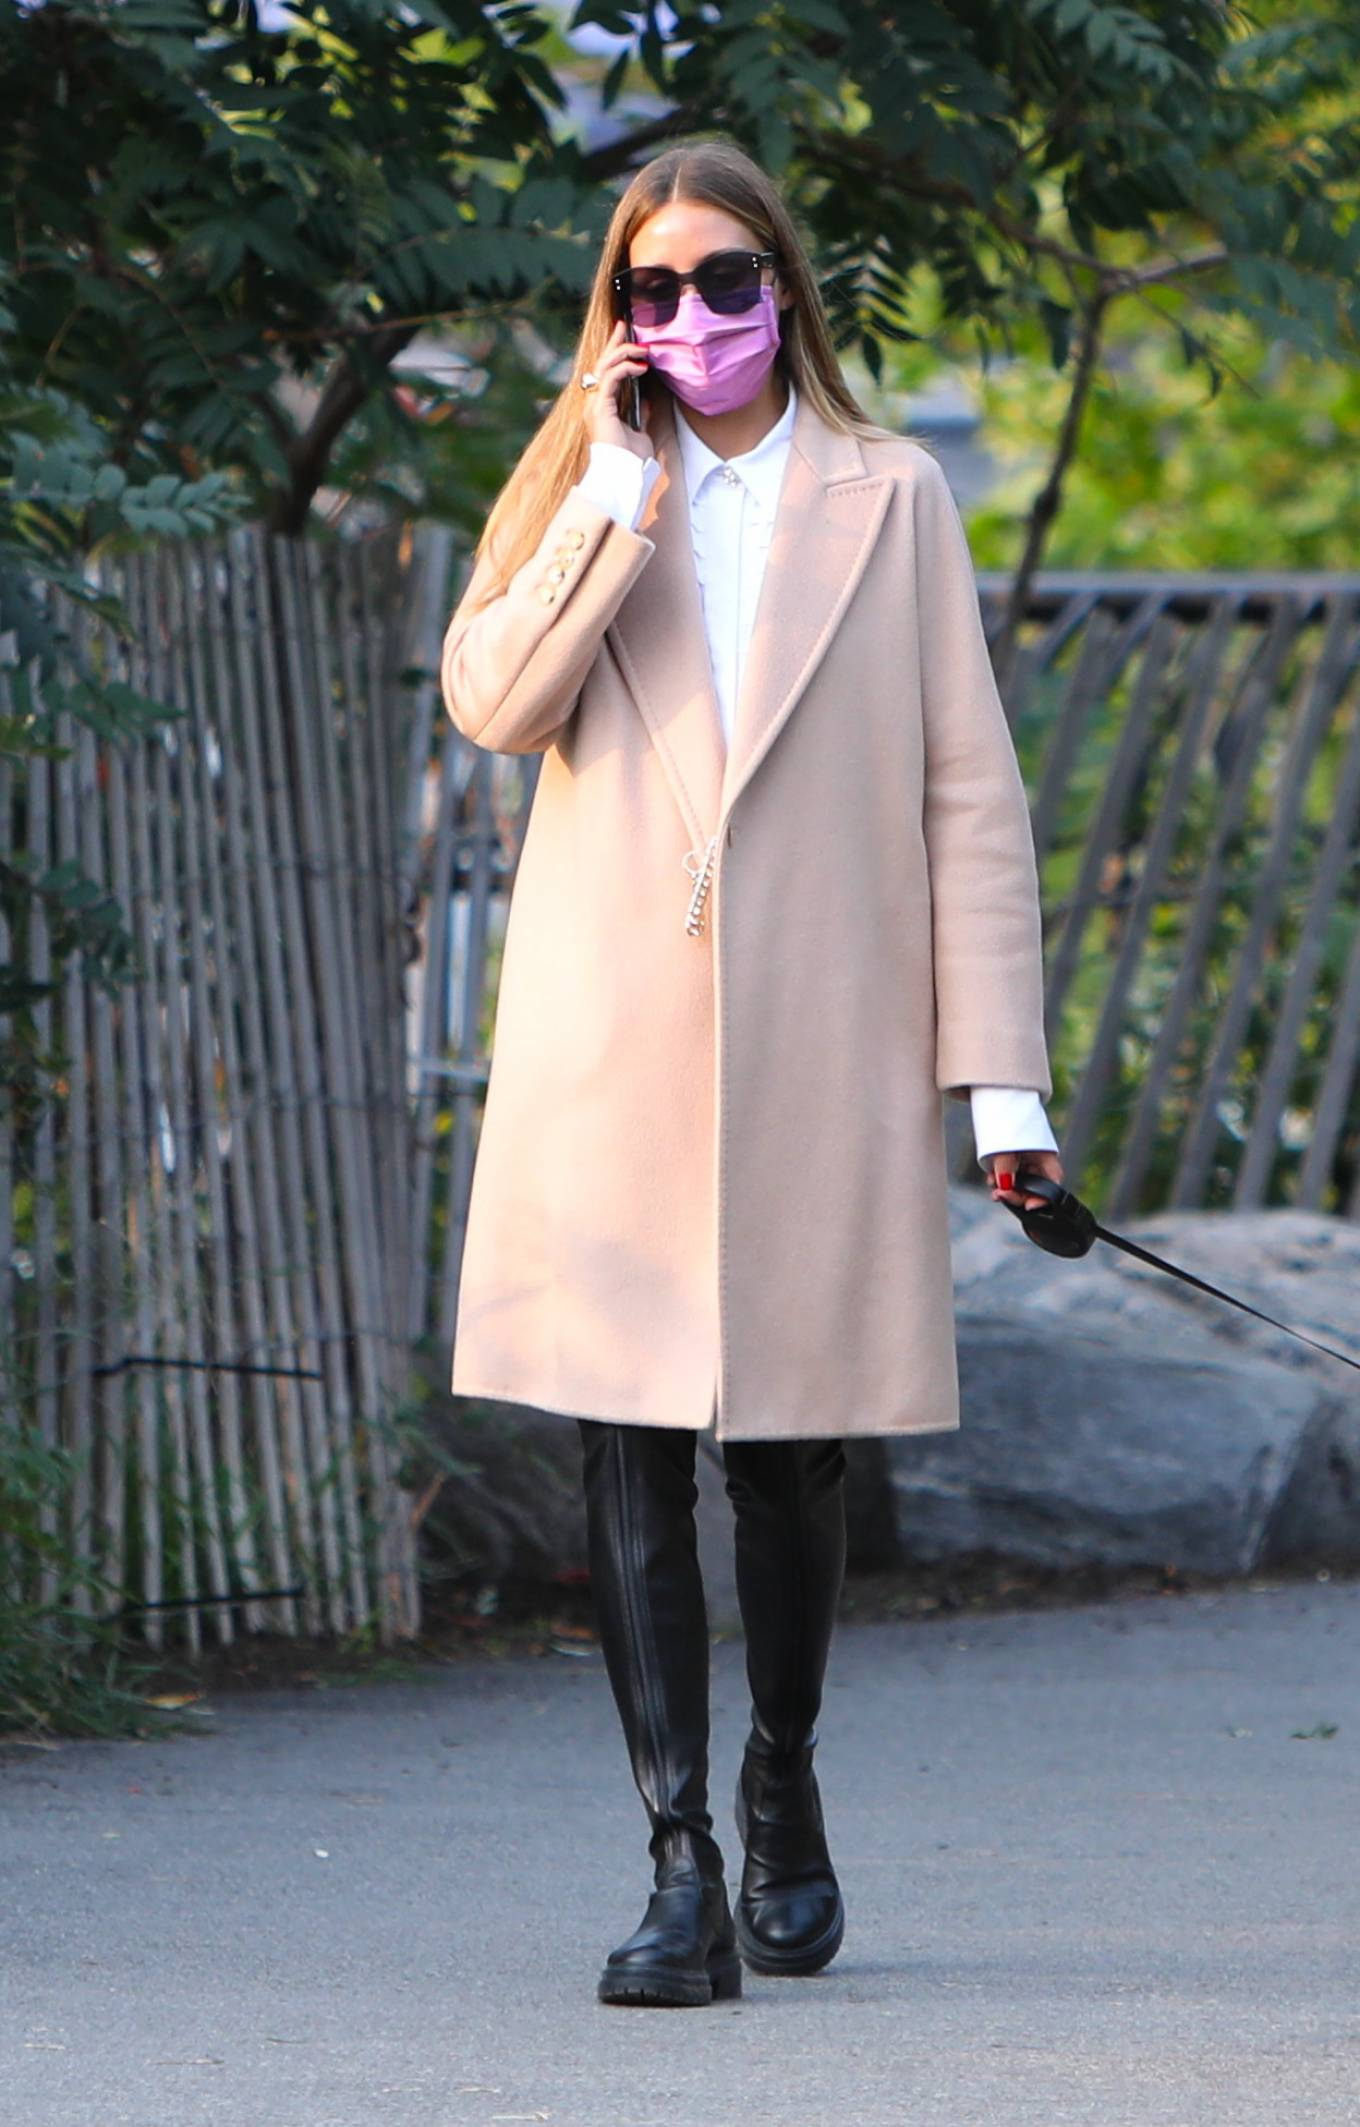 Olivia Palermo 2020 : Olivia Palermo – Wearing a white short dress under a coat while out for a walk in Manhattan-09